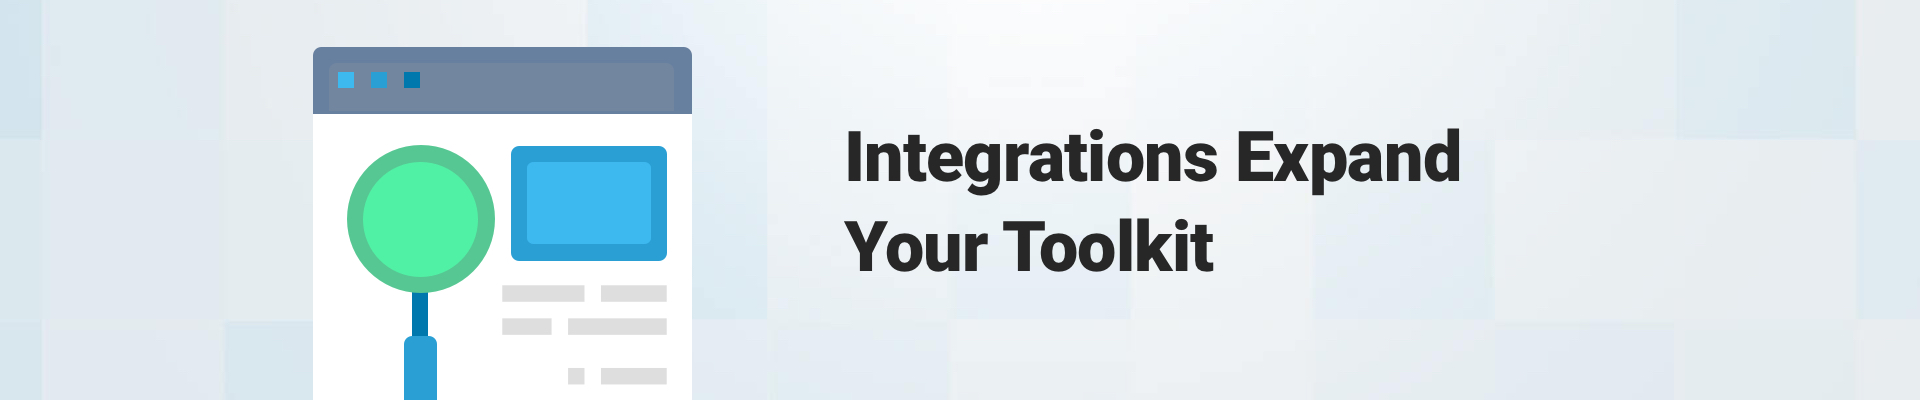 integrations expand your toolkit